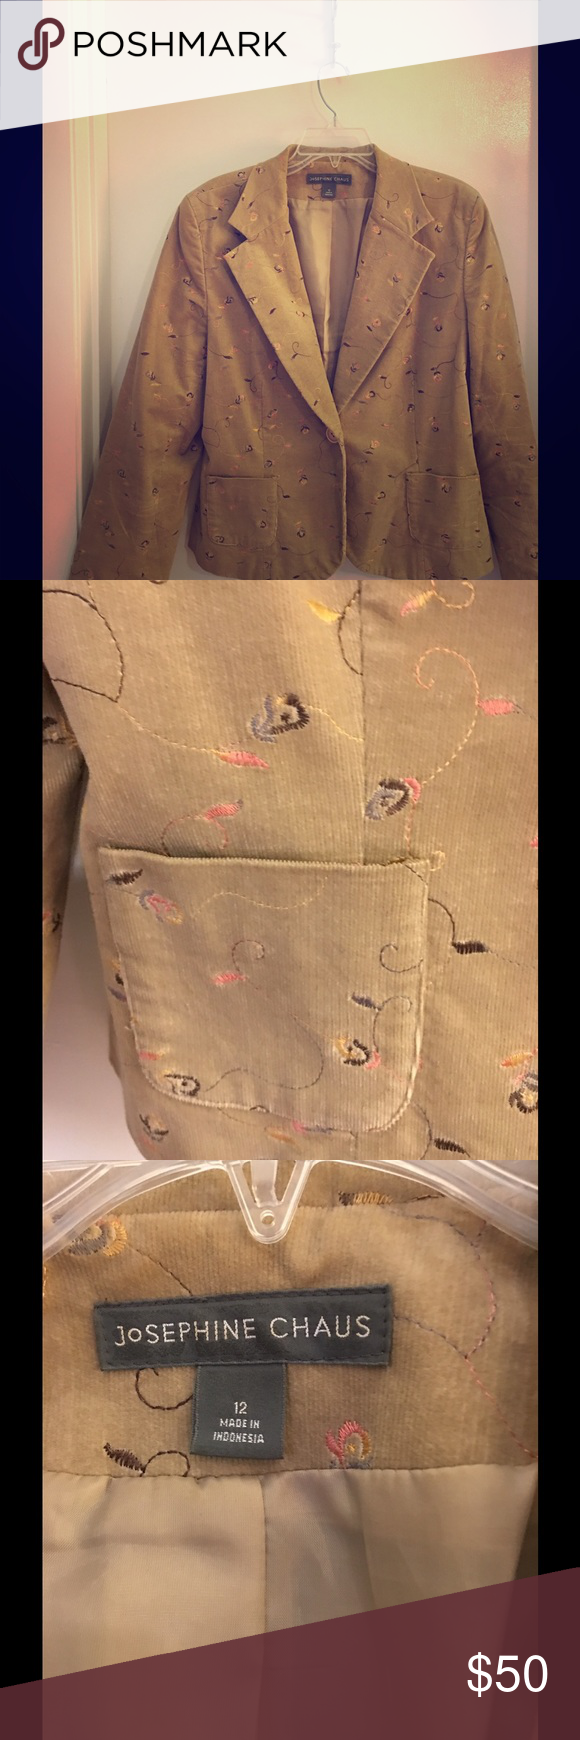 """Beautiful Embodied Blazer by Josephine Chaus High level of workmanship, comfort, style and classy. The neutral beige can go with anything but picking up the orange color would really make the blazer """"POP"""", Josephine Clause Jackets & Coats Blazers"""